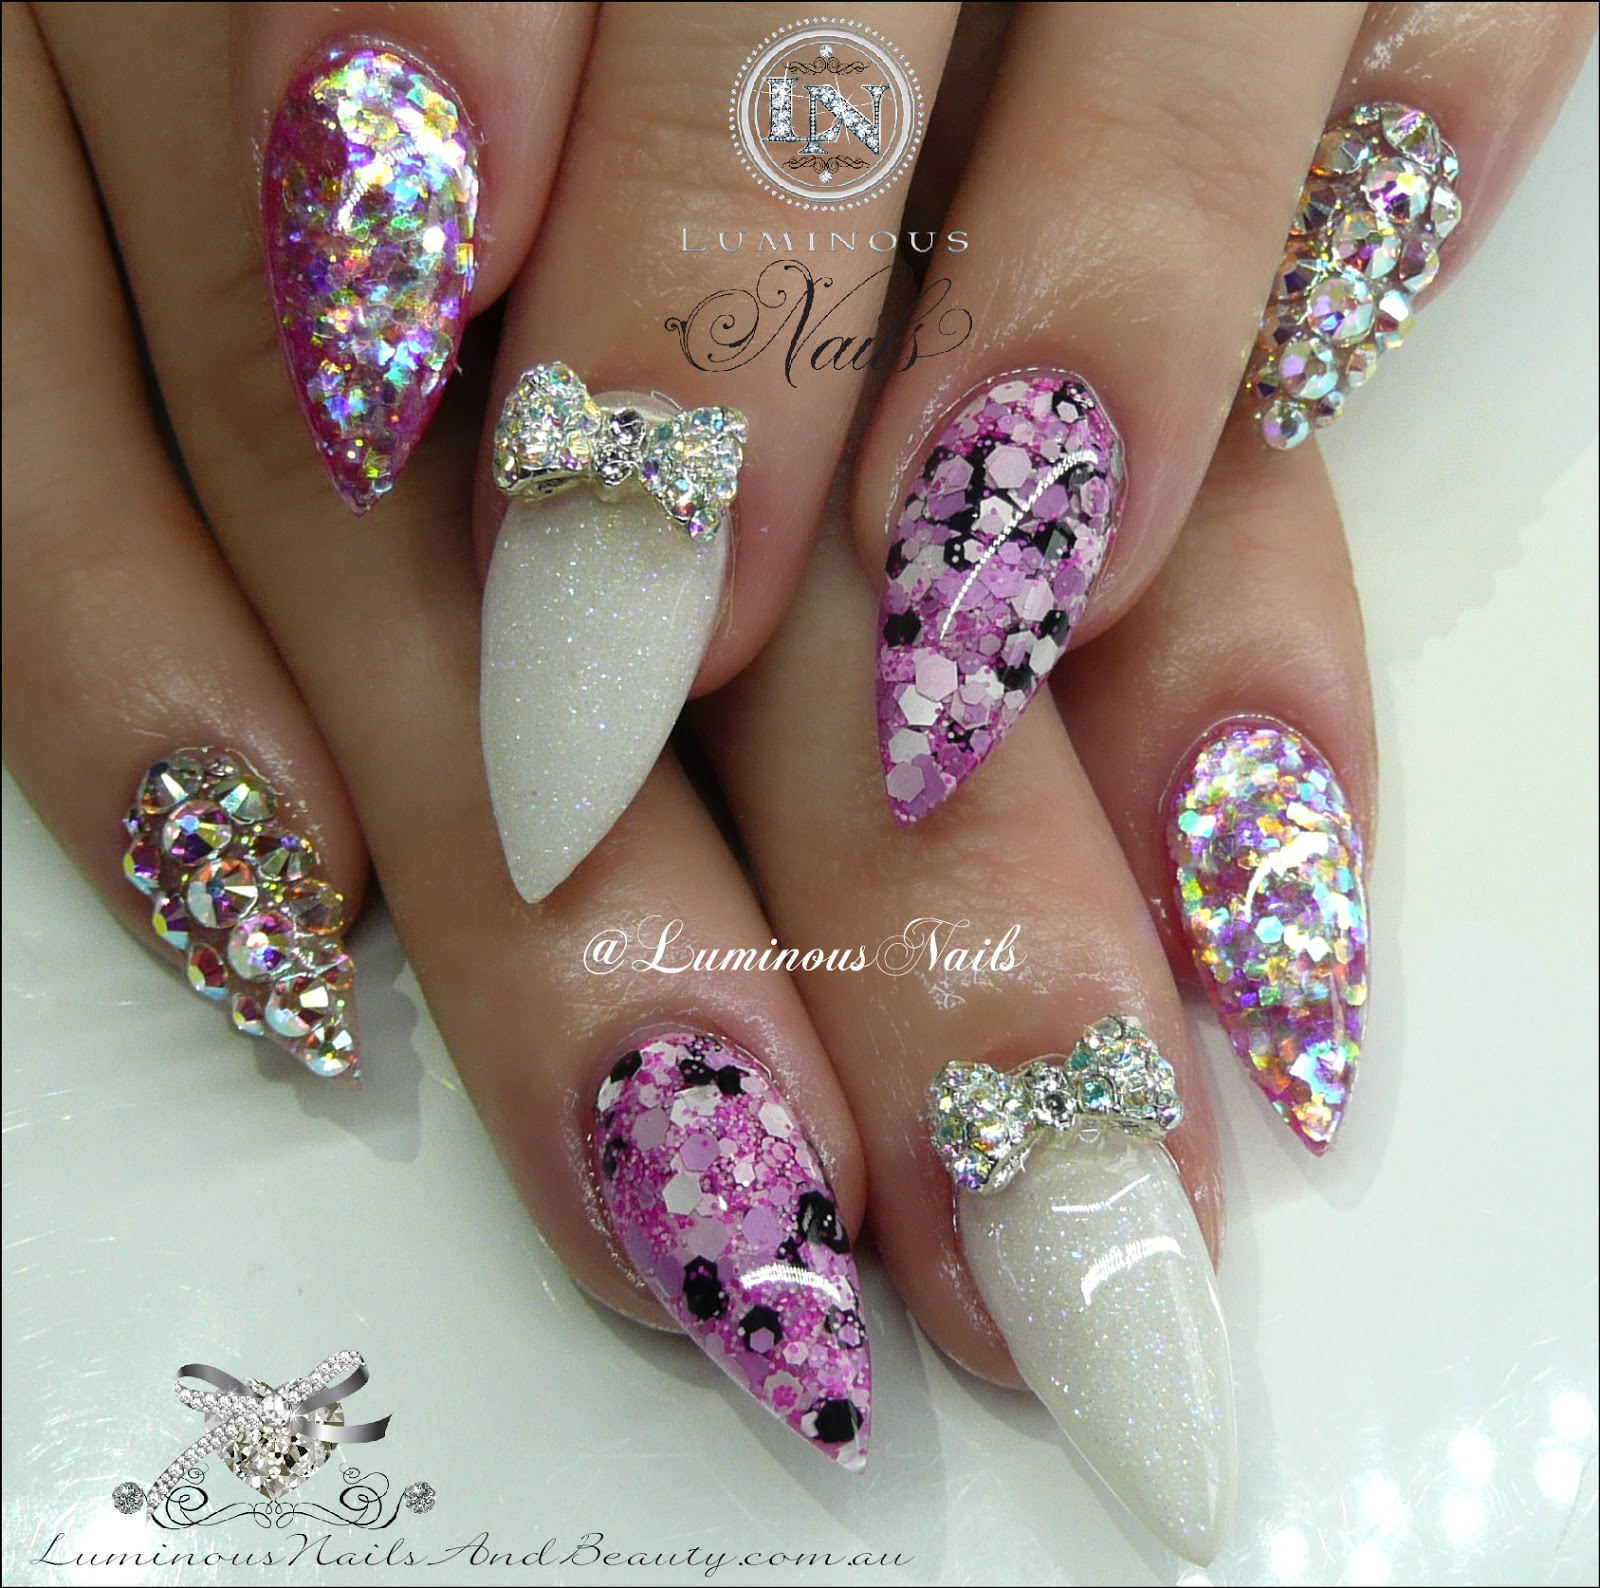 Luminous Nails: Pretty in Pink Acrylic Nails with Encased Flowers ...